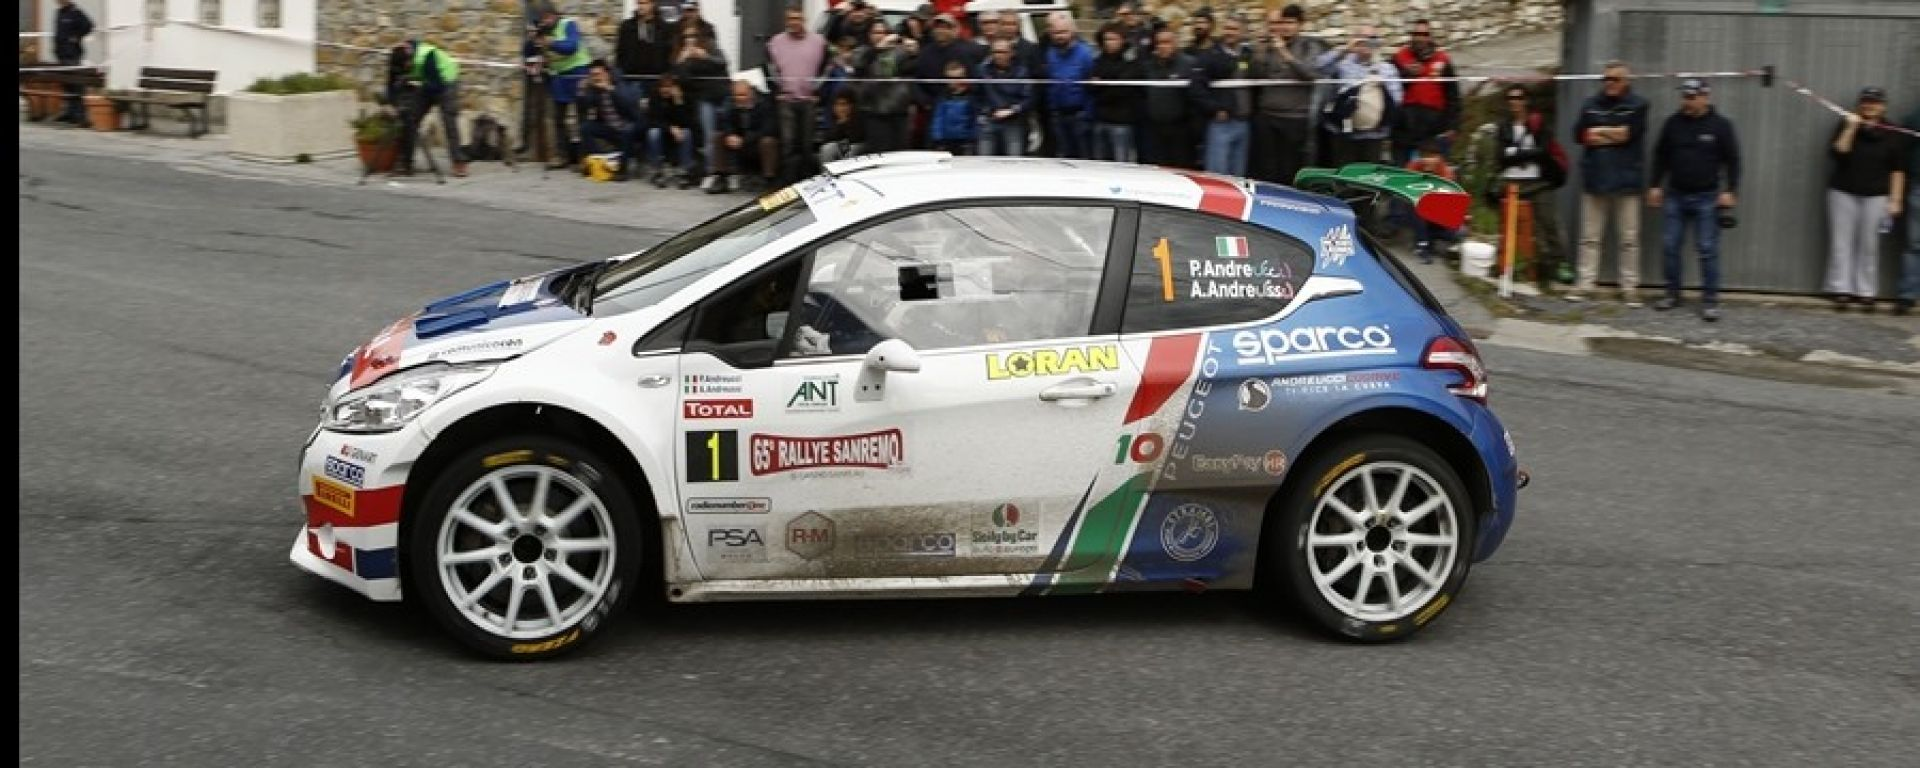 Rally Sanremo 2018: Andreucci trionfa insieme a Peugeot